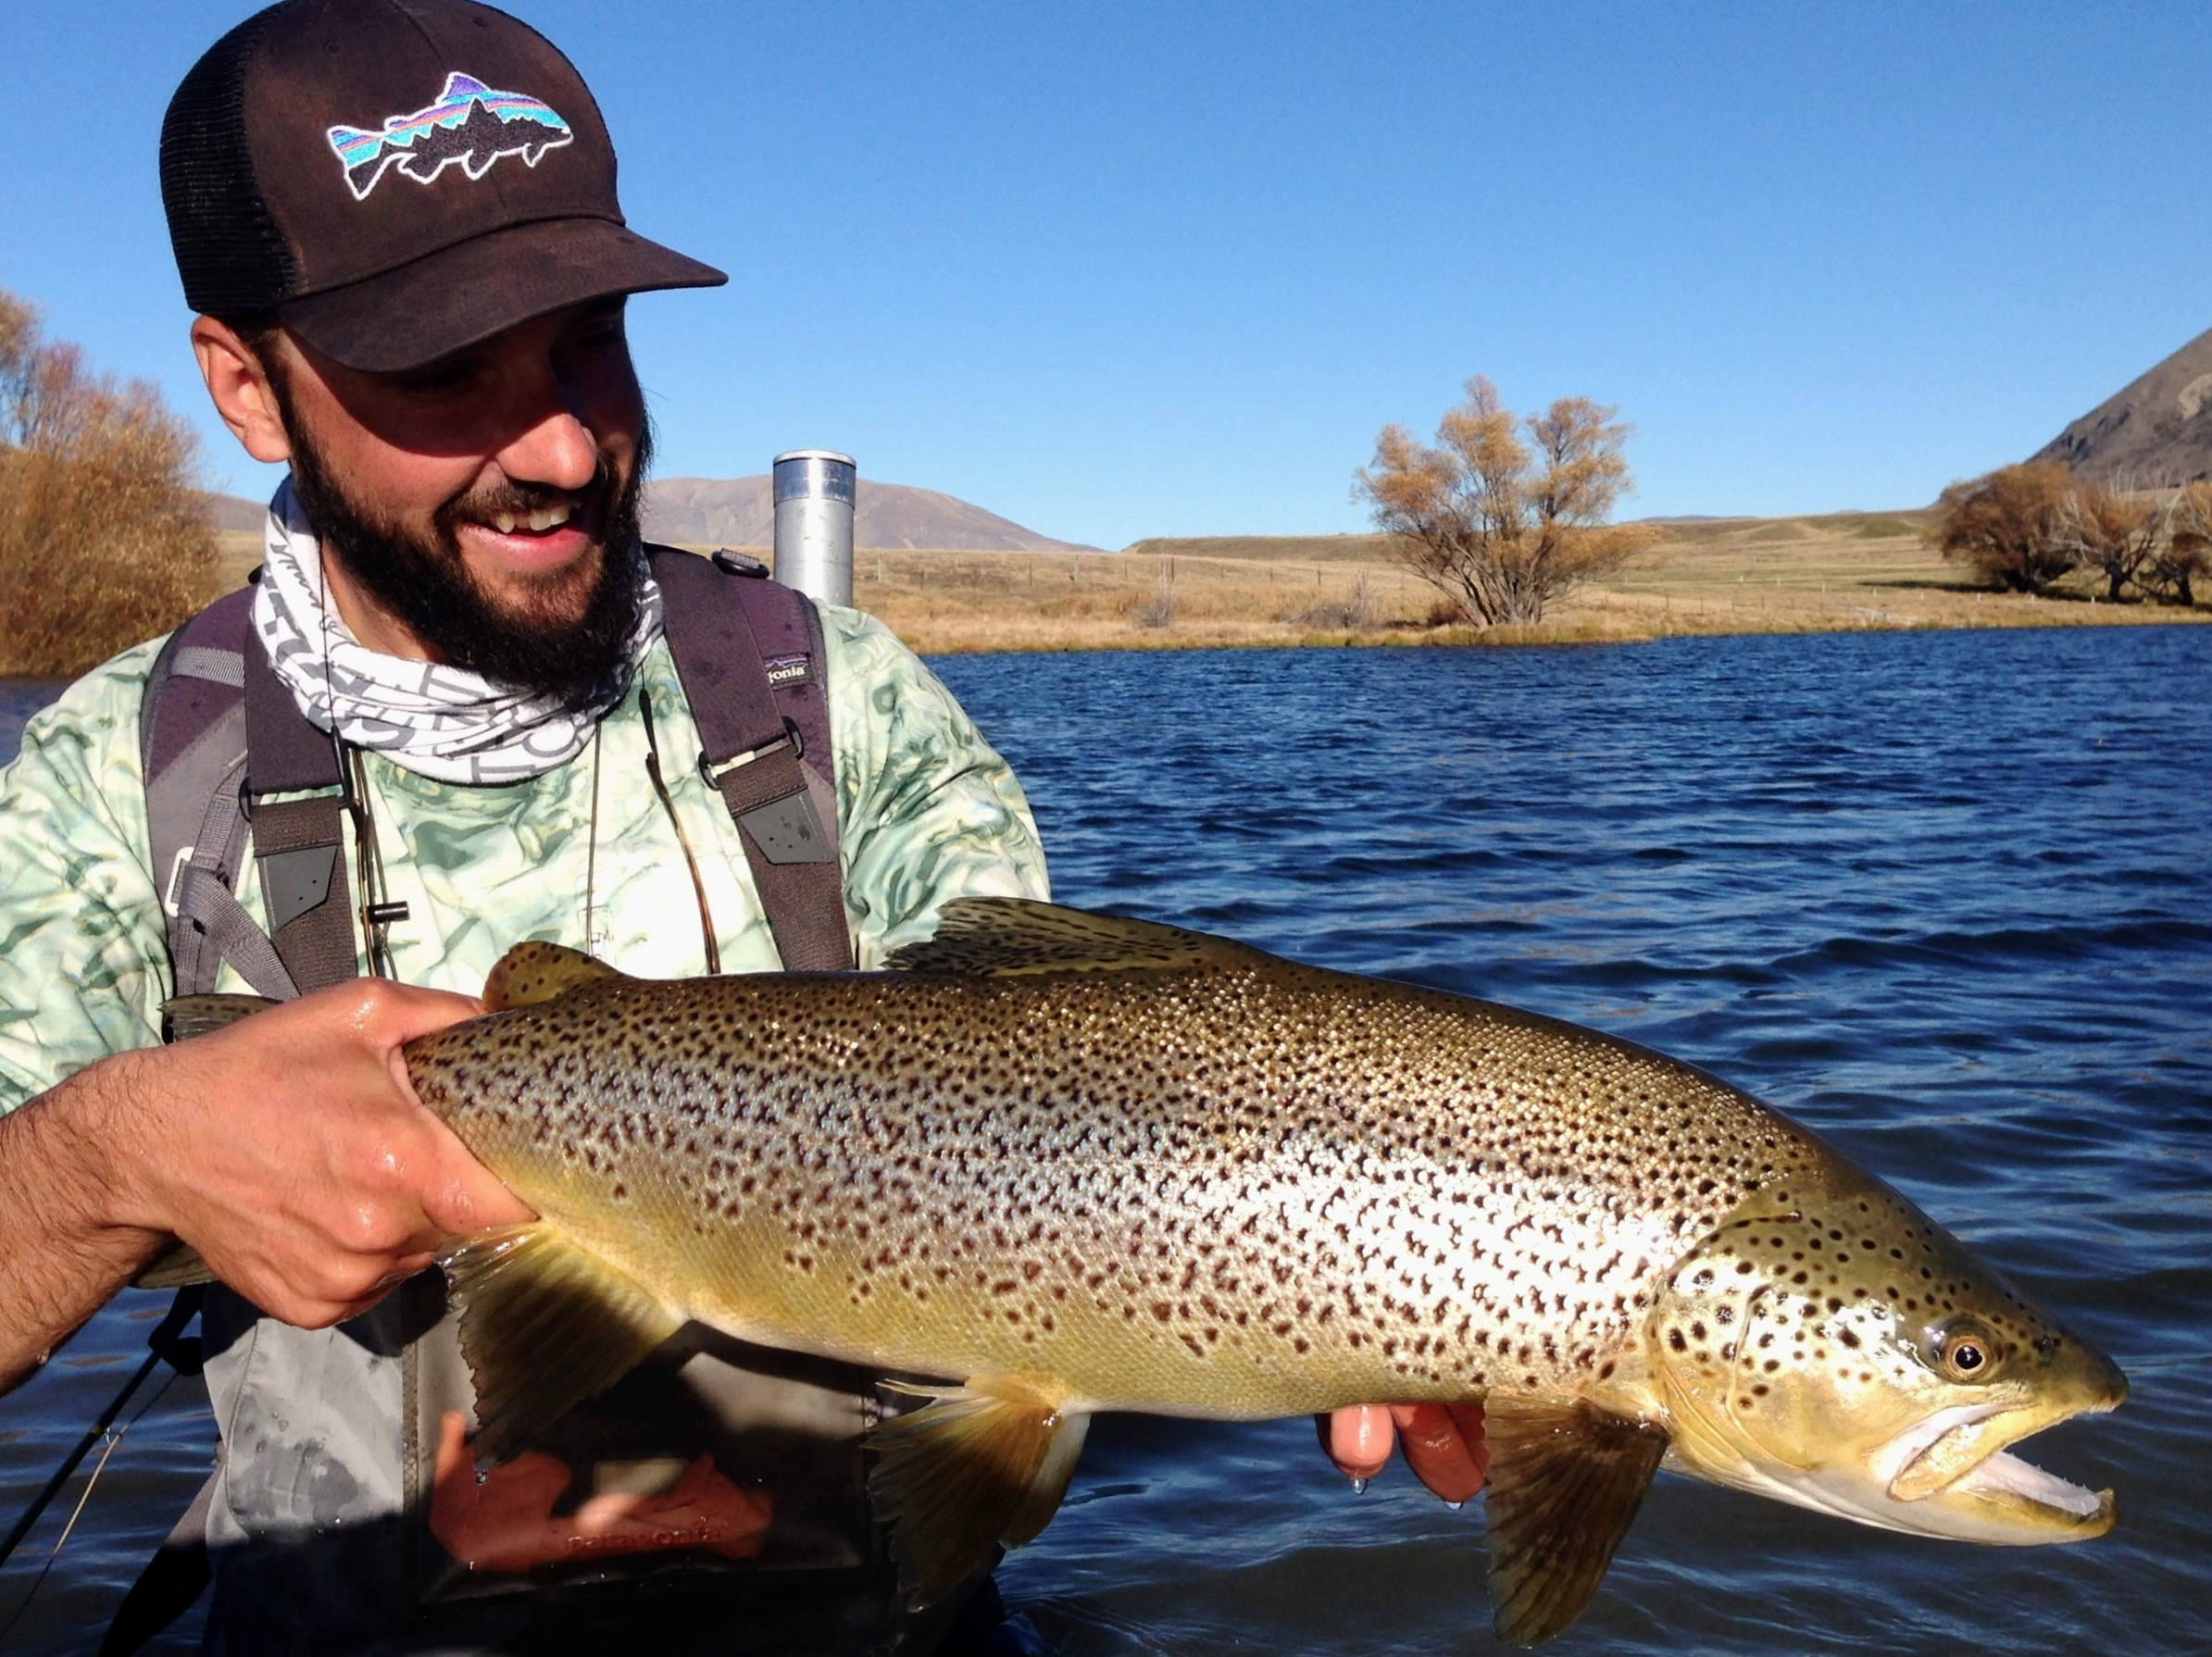 Giant New Zealand brown trout